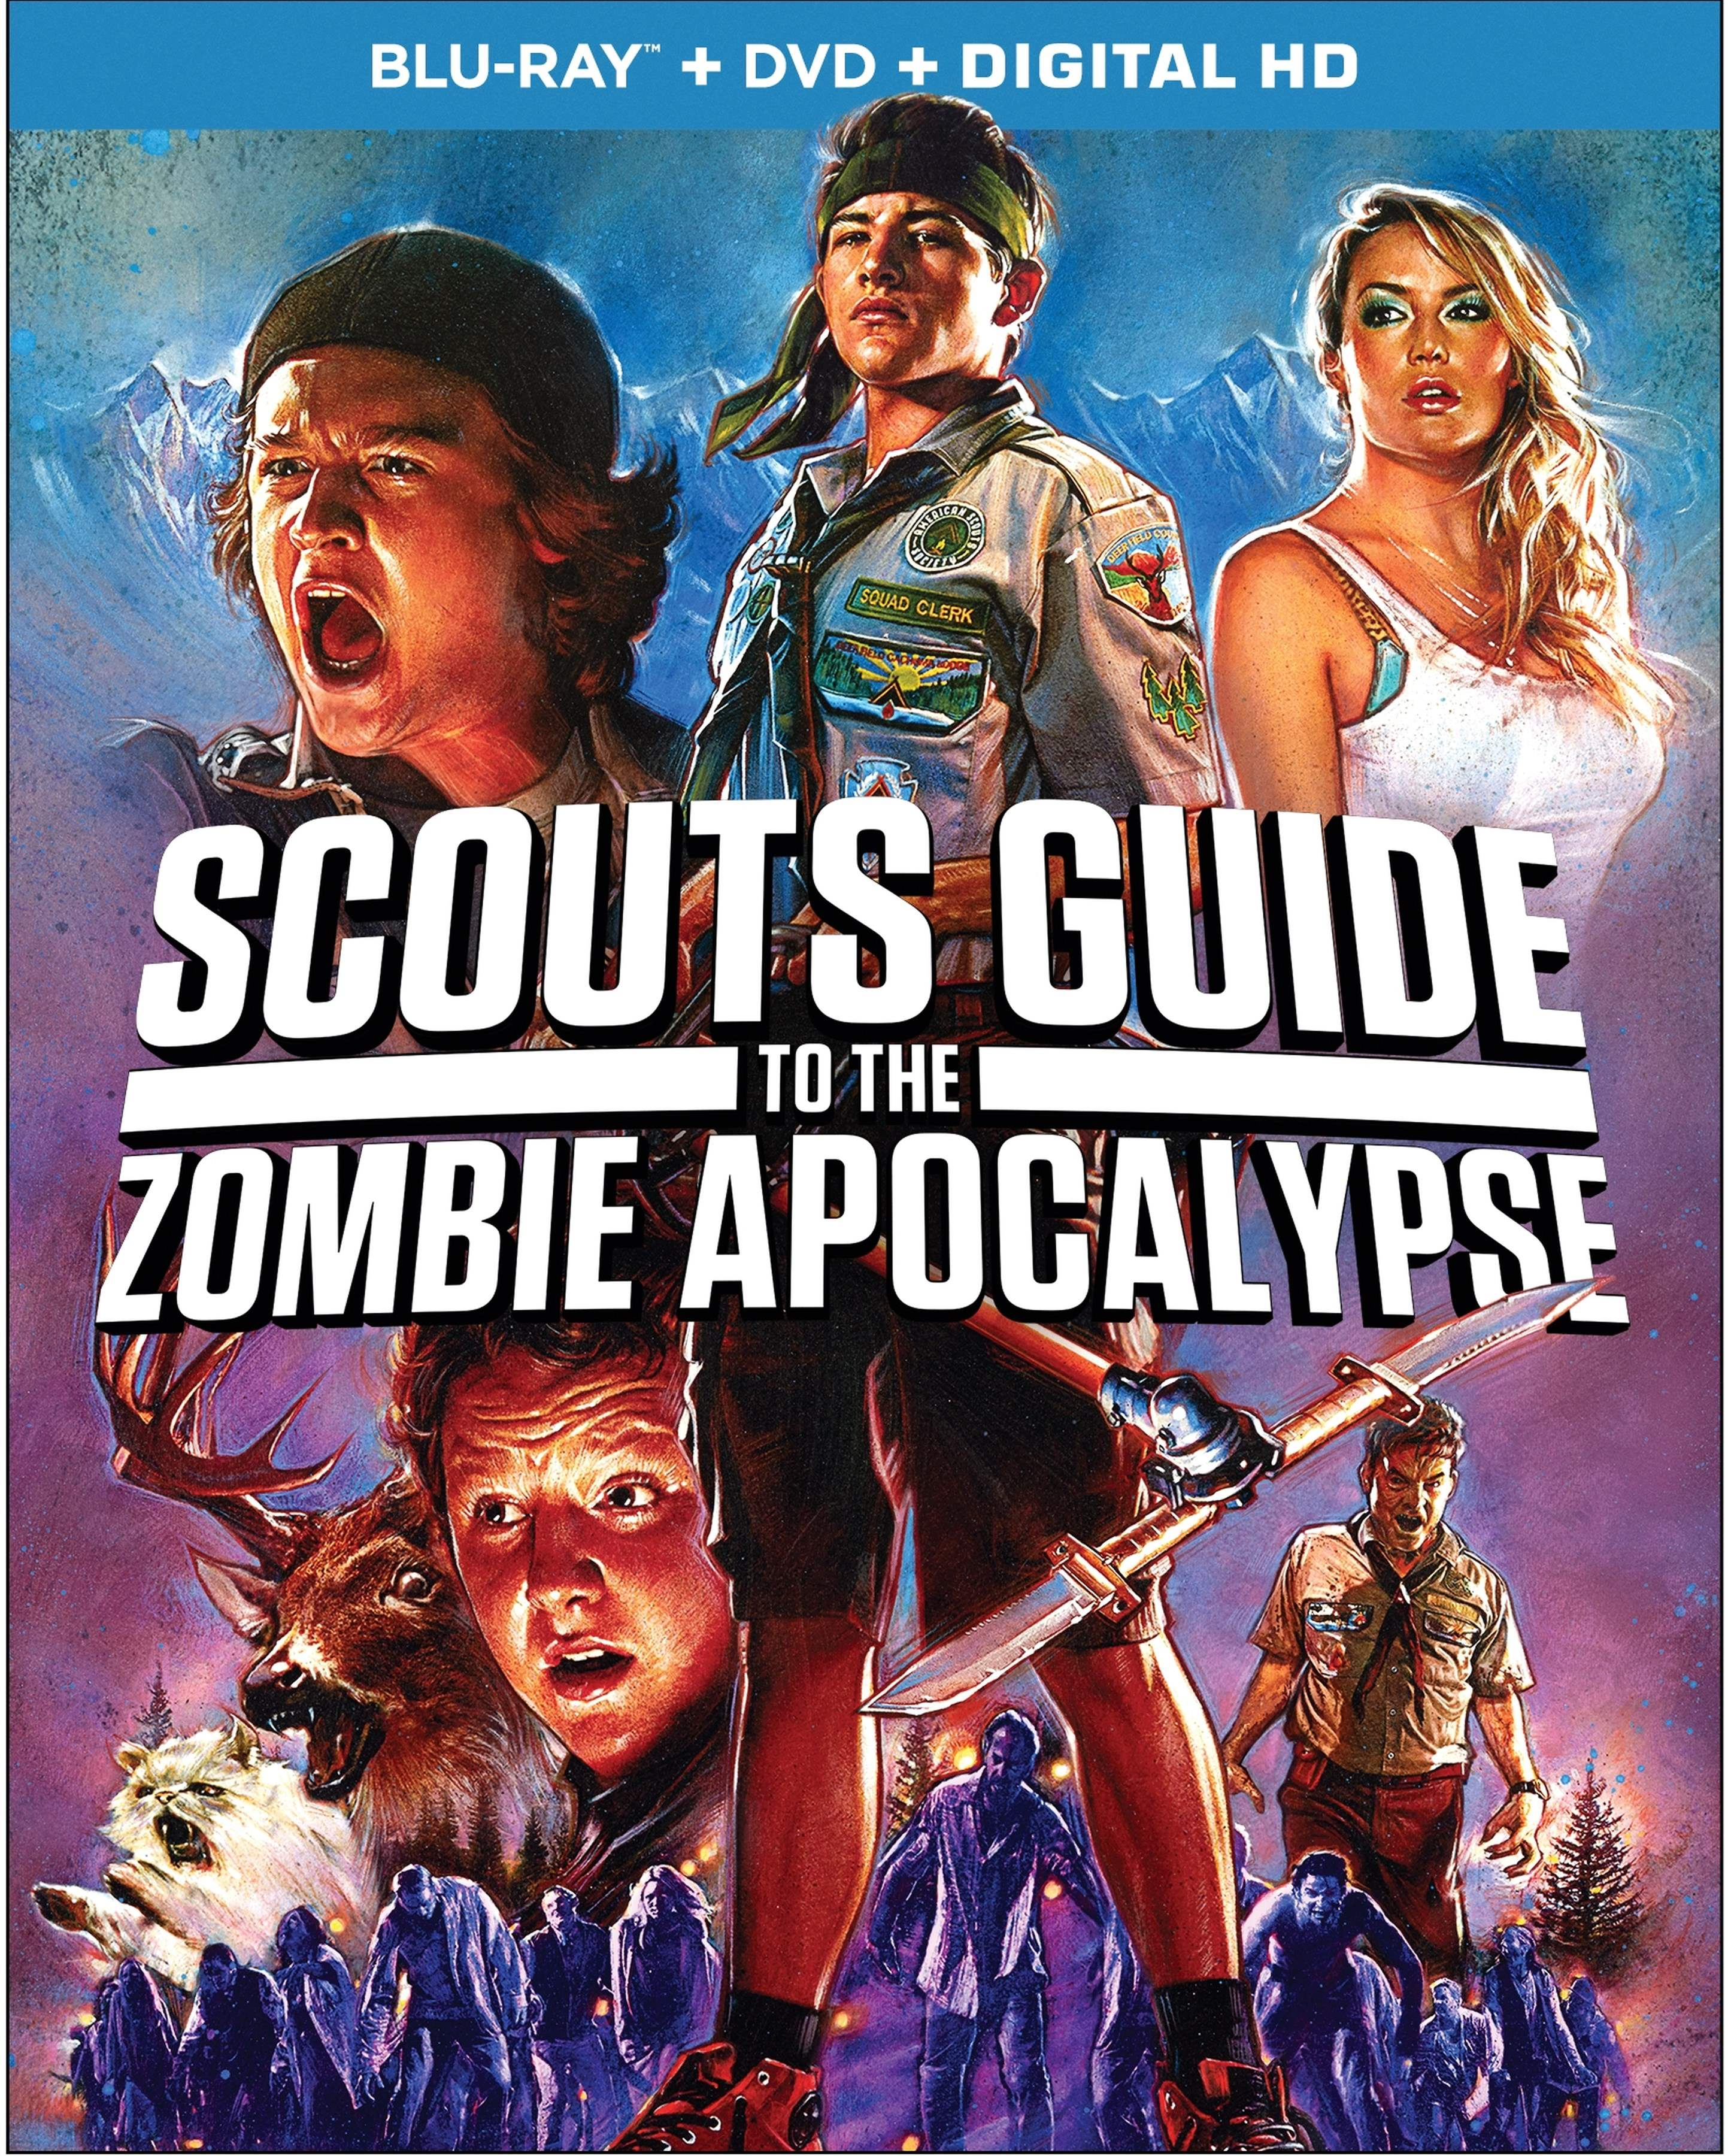 Blu-Ray cover for Scouts Guide to the Zombie Apocalypse